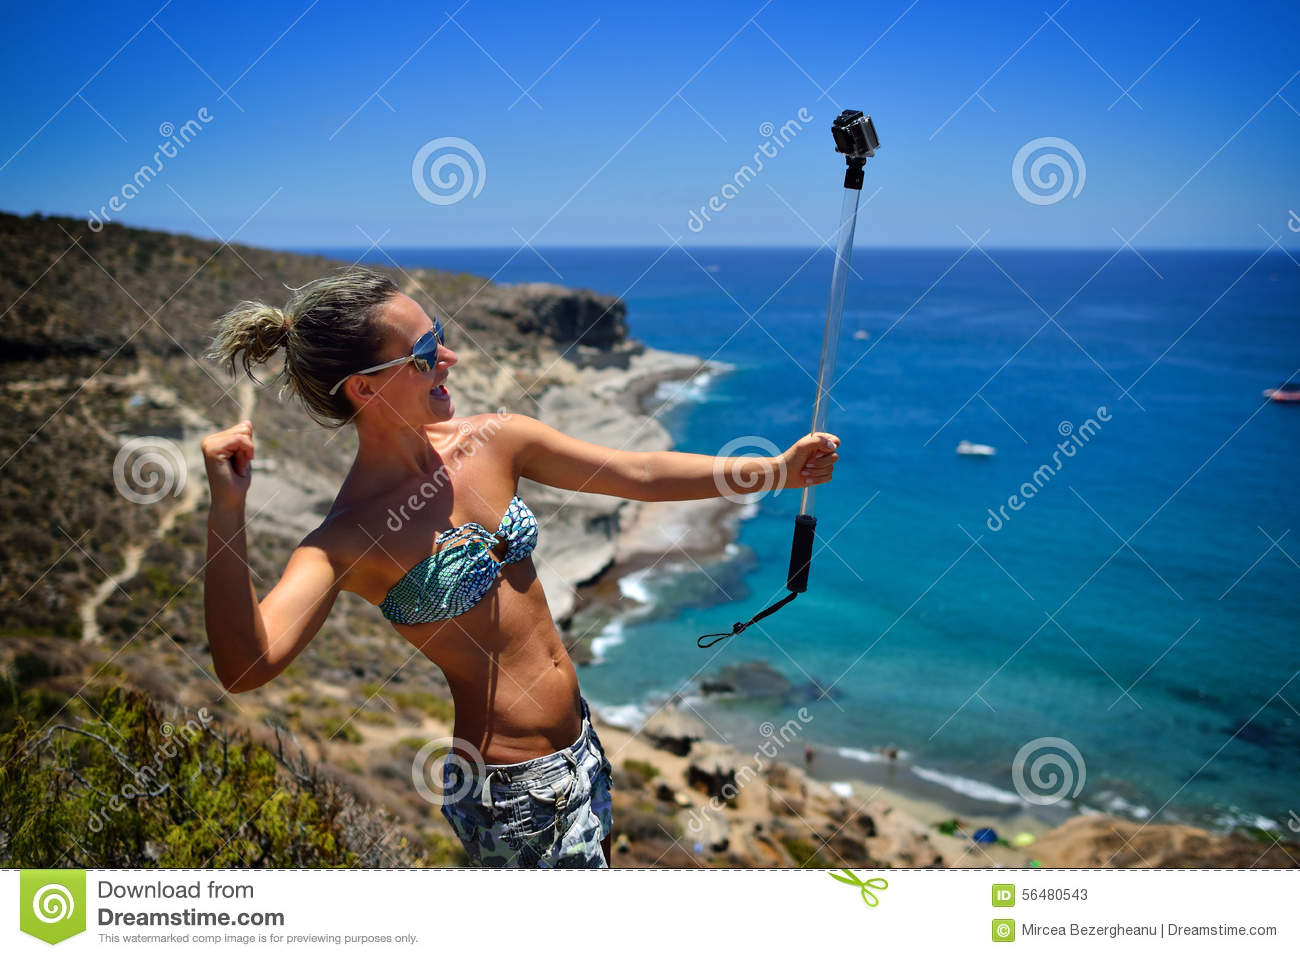 Palm Beach Tan Prices >> Young Woman On The Beach In Summer Using Gopro Stock Image ...